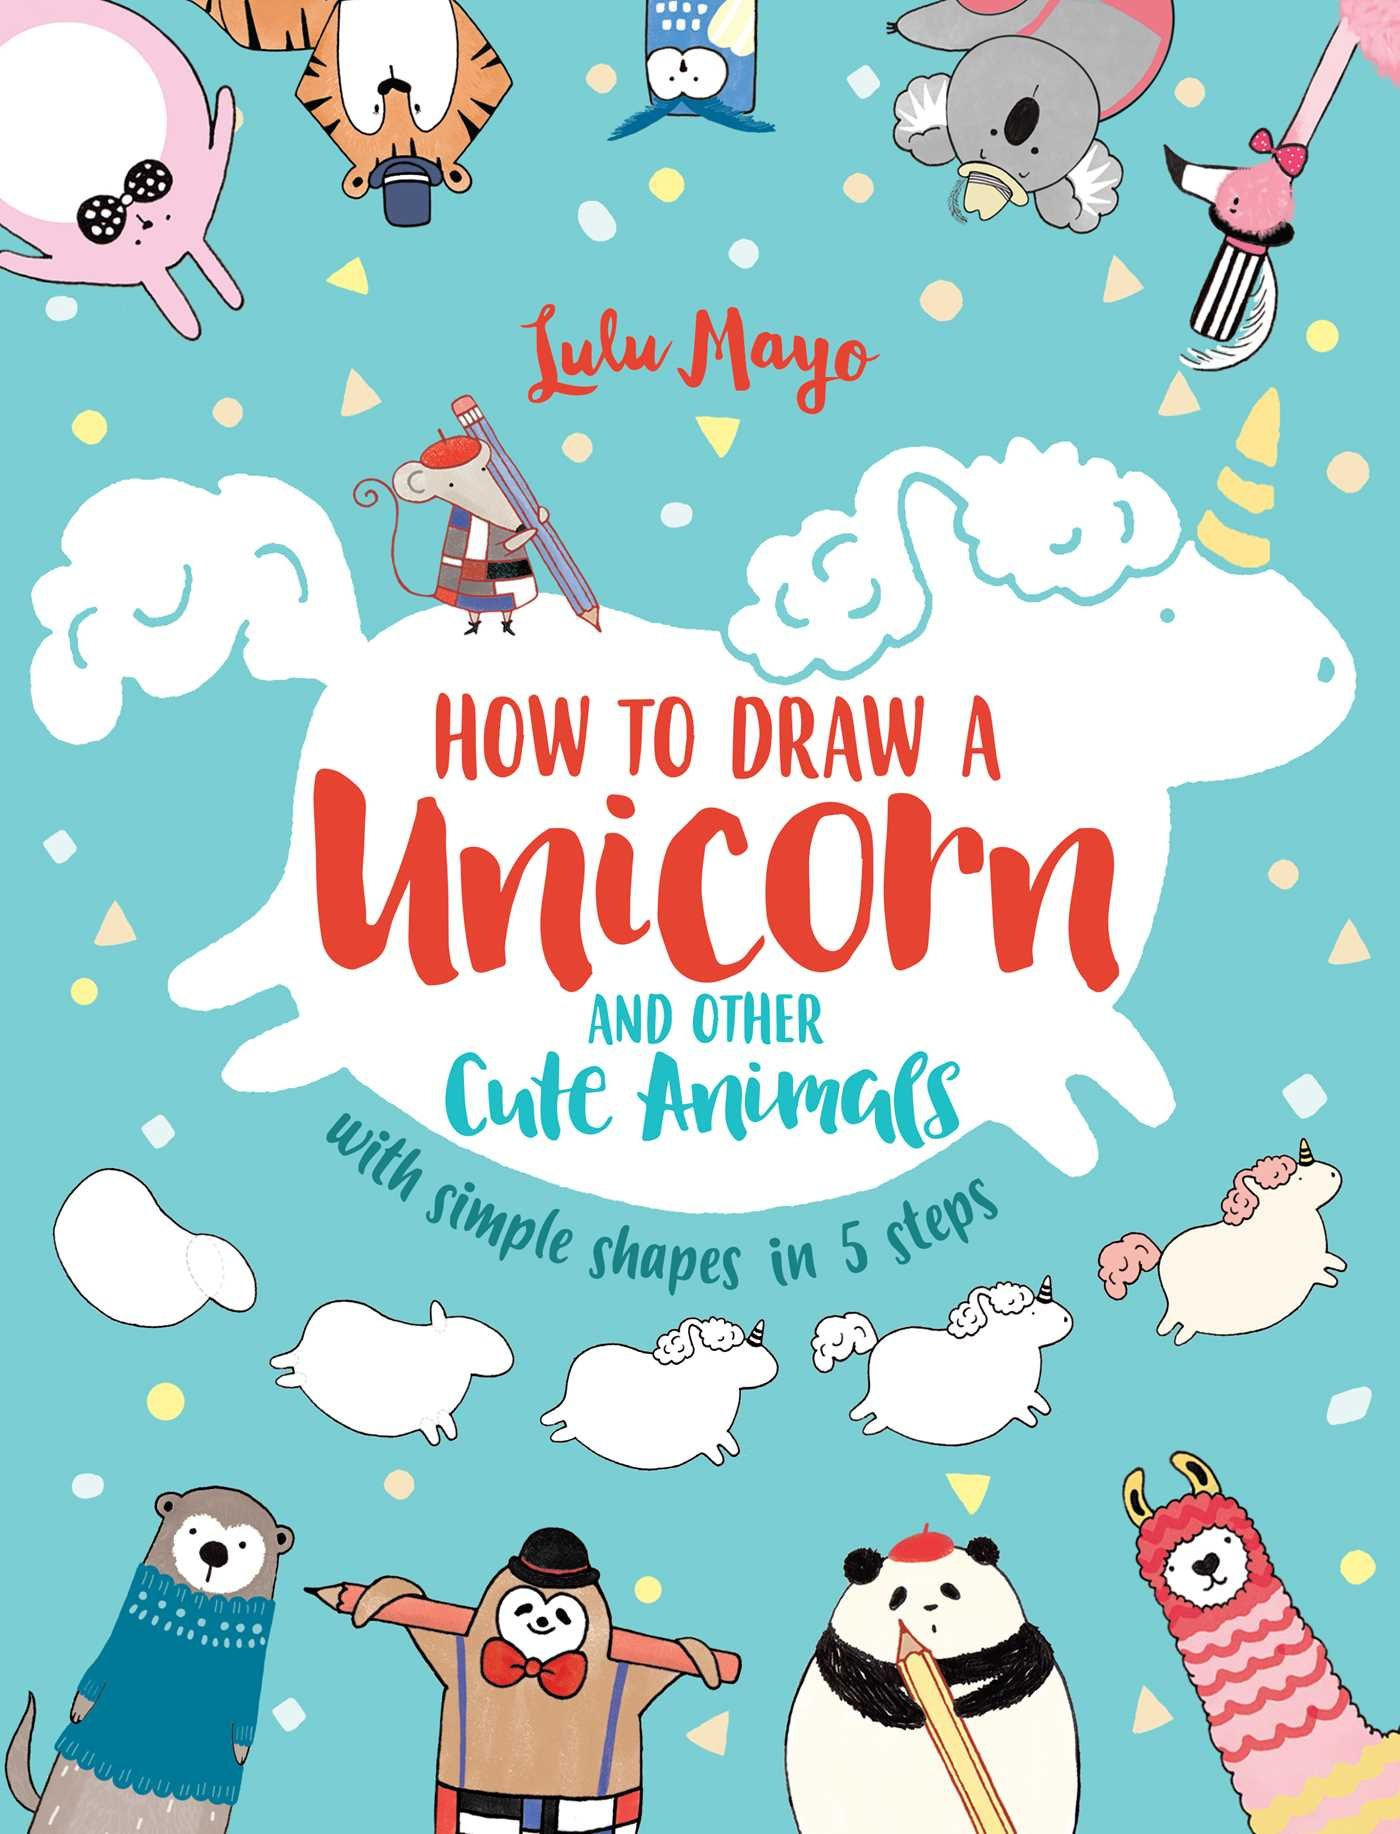 How To Draw A Unicorn And Other Cute Animals With Simple Shapes In 5 Steps Volume 1 Mayo Lulu 0050837421721 Amazon Com Books